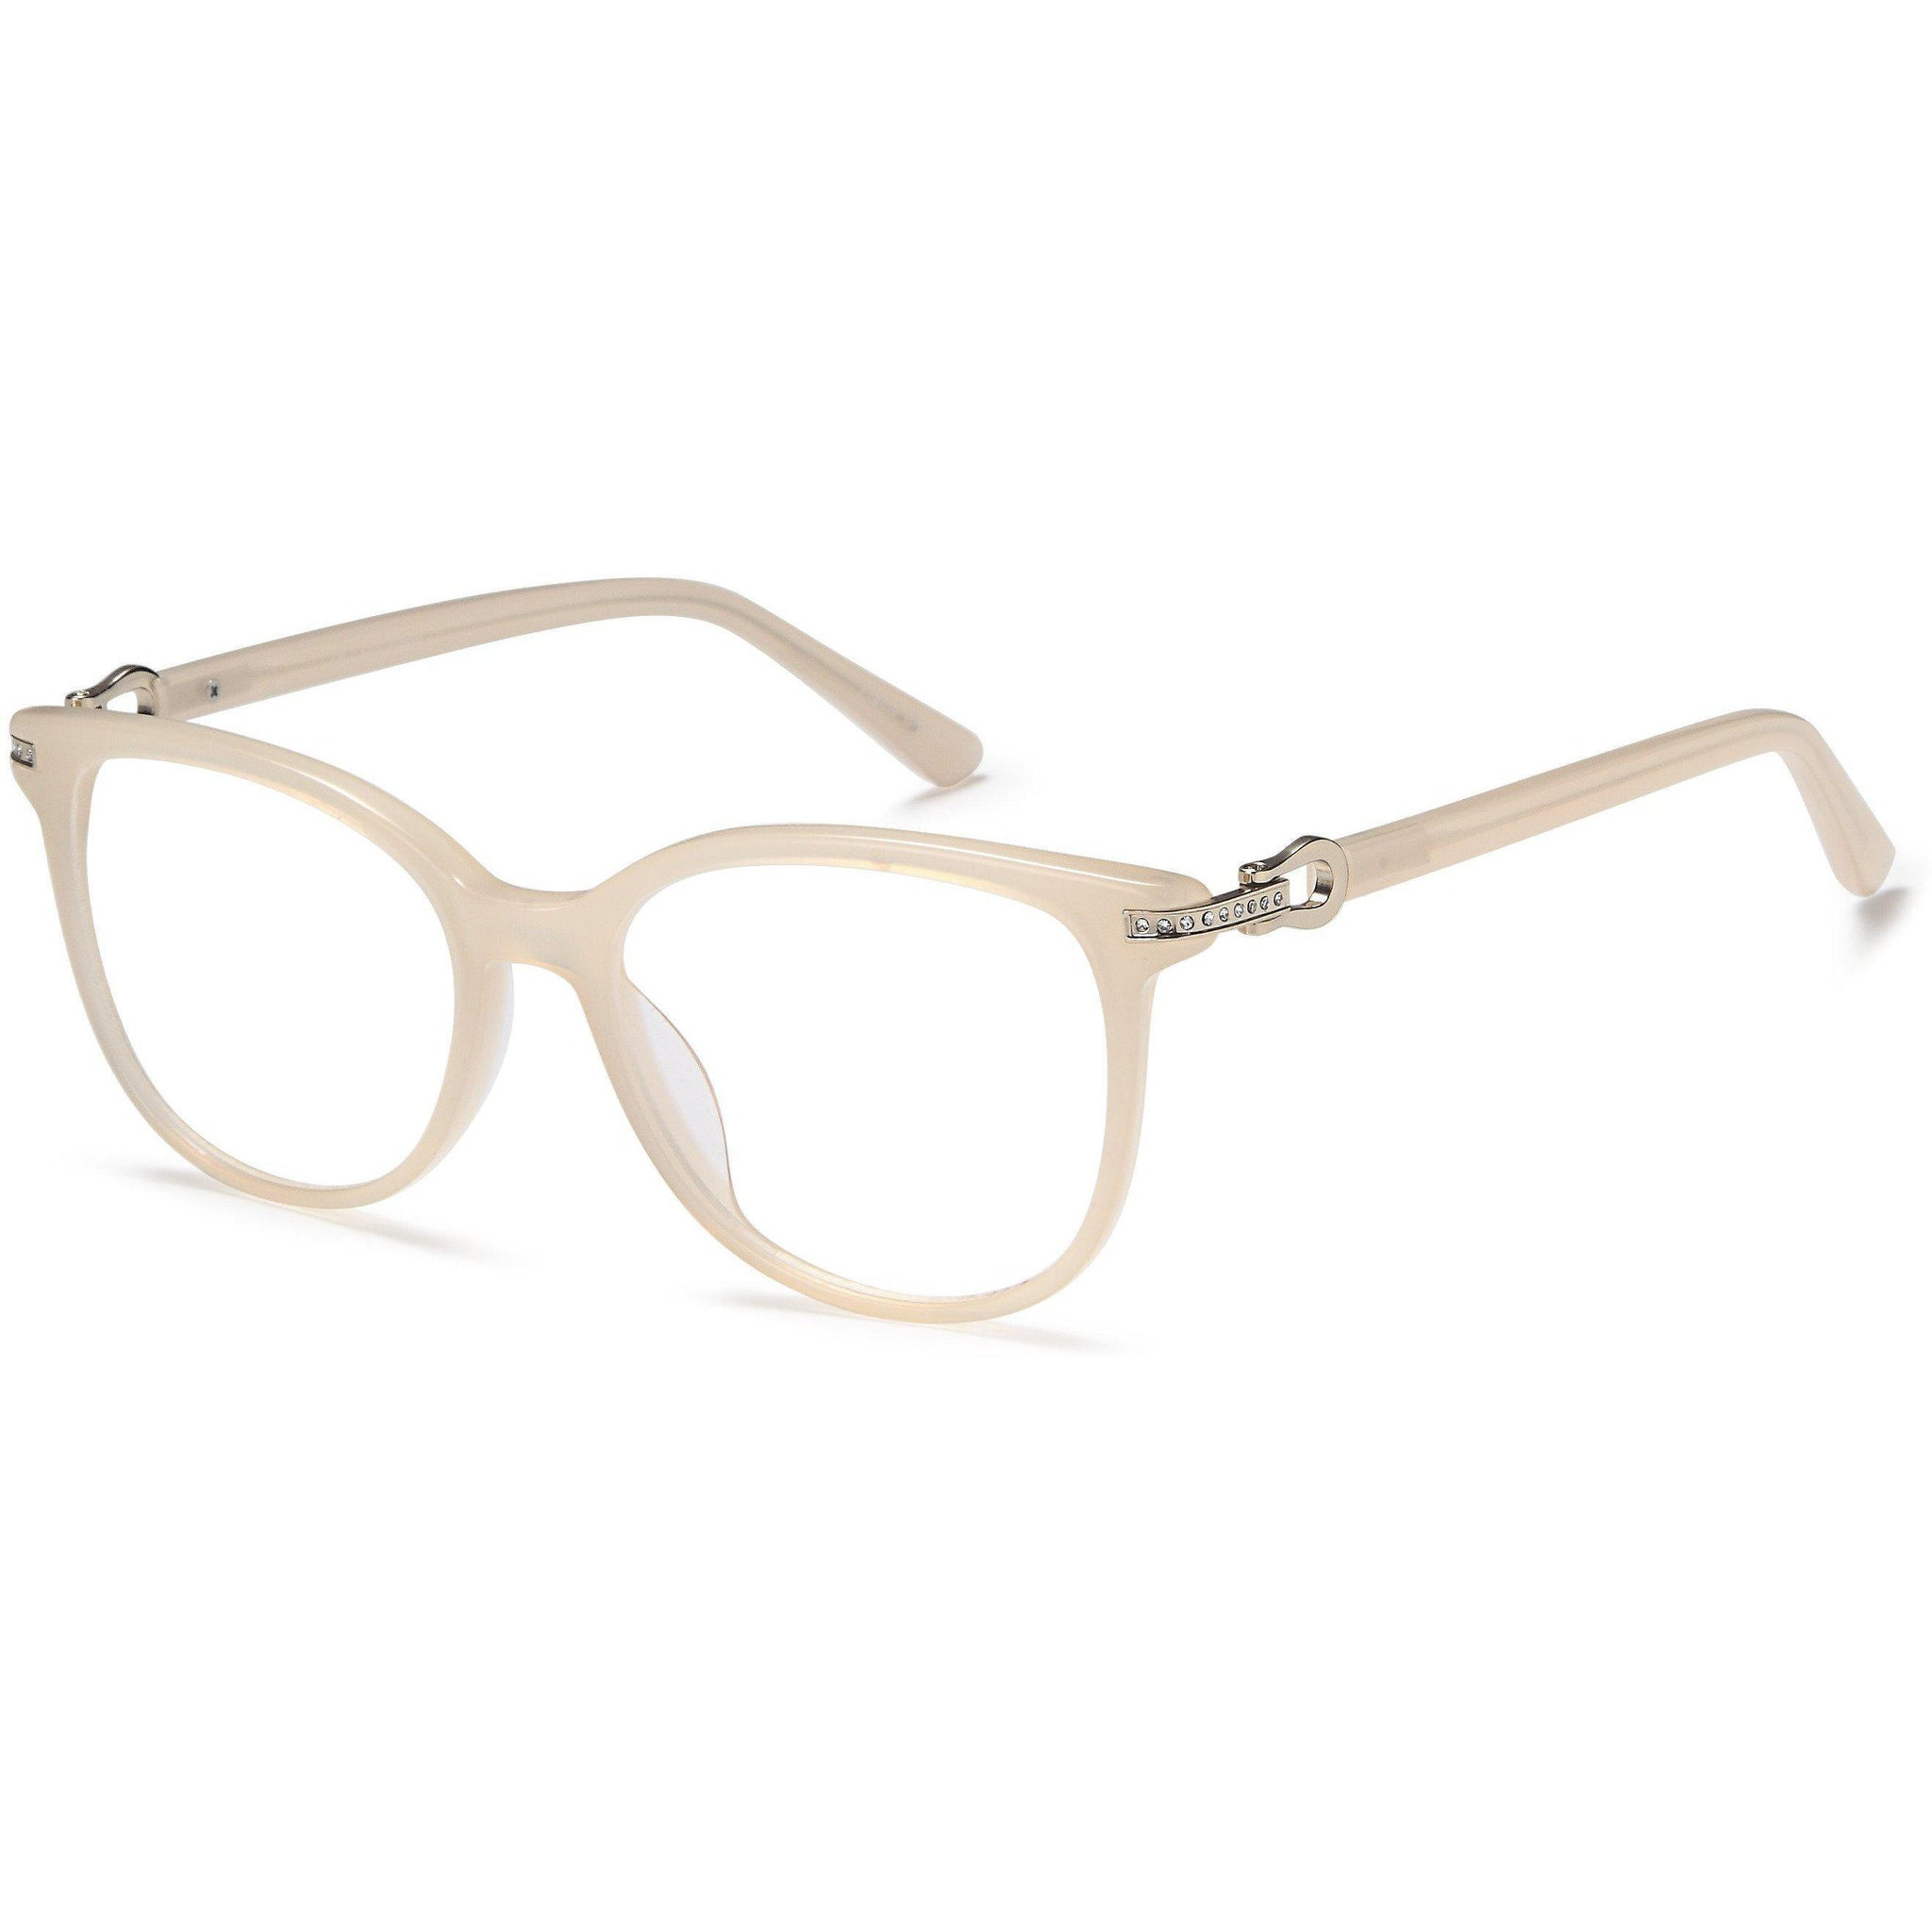 Leonardo Prescription Glasses DC 323 Eyeglasses Frame